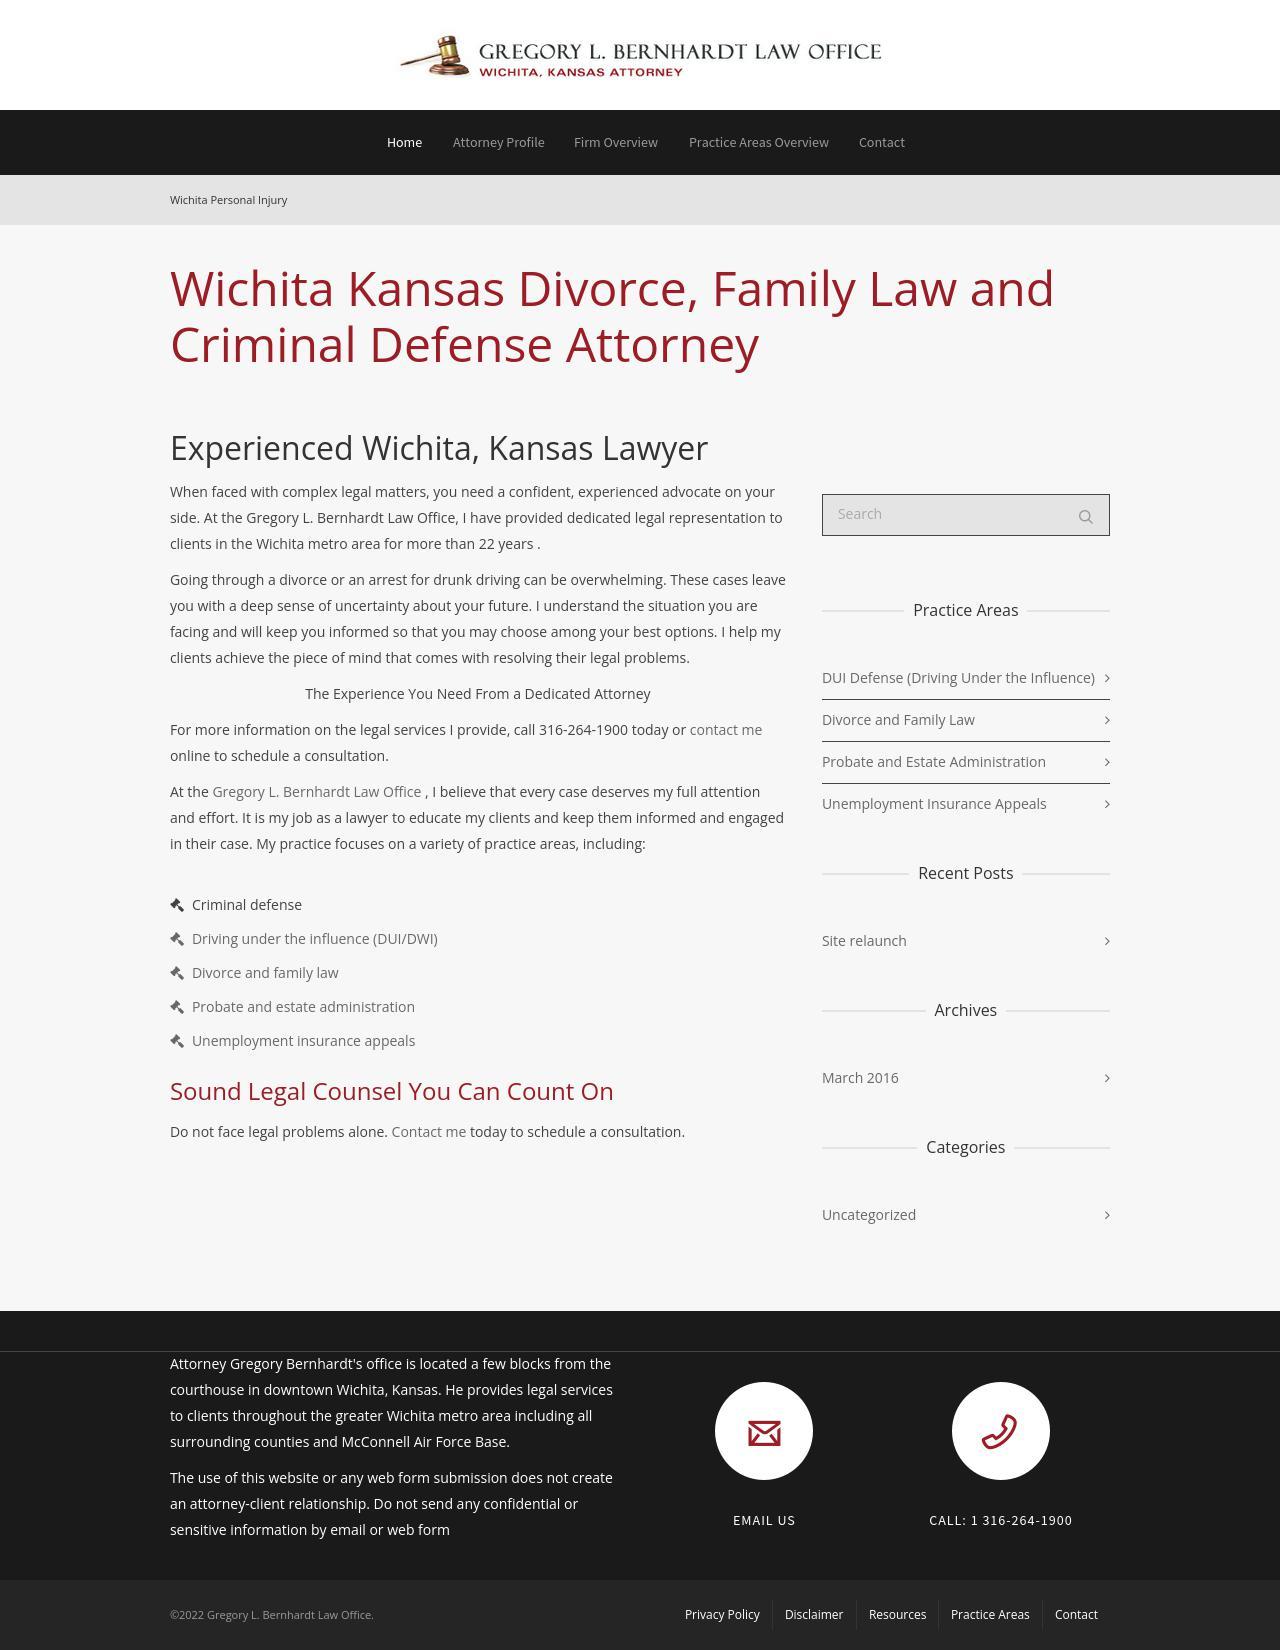 Gregory L. Bernhardt Law Office - Wichita KS Lawyers